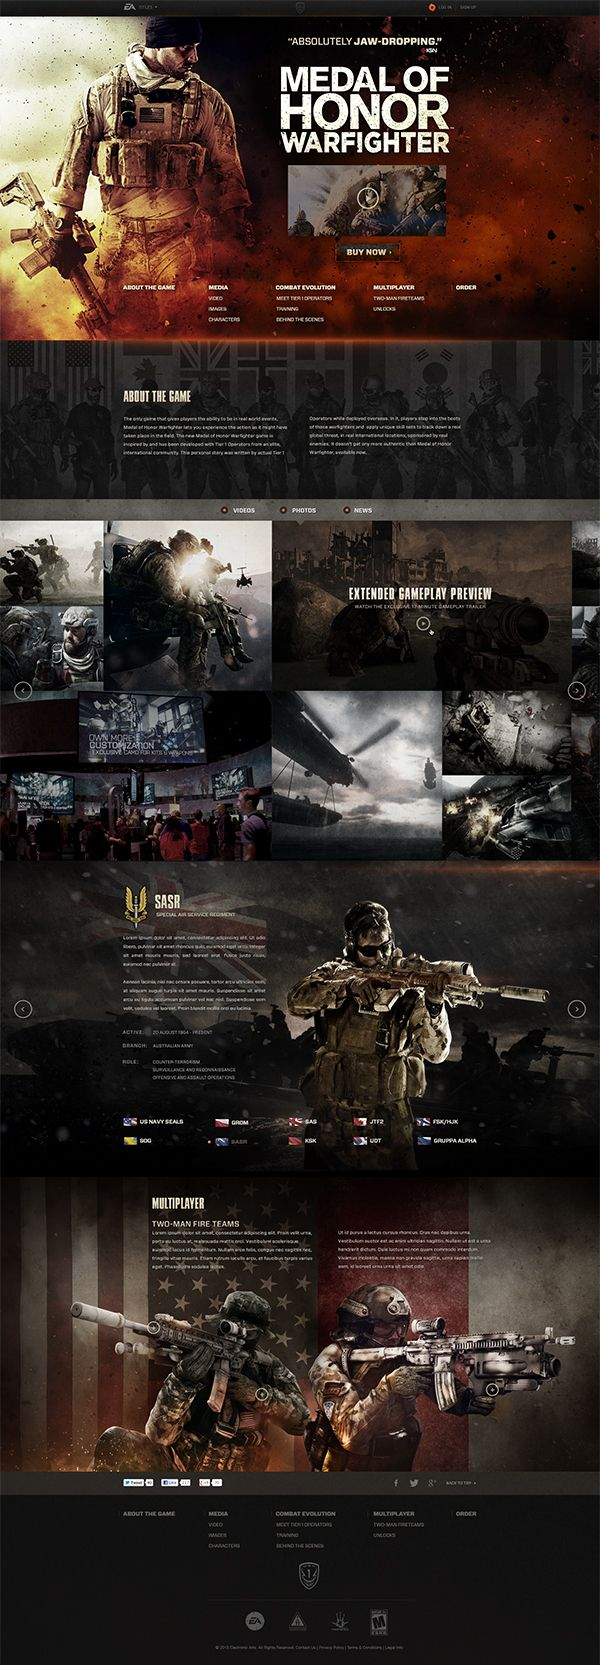 Cool Web Design, MEDAL OF HONOR. #webdesign #webdevelopment…